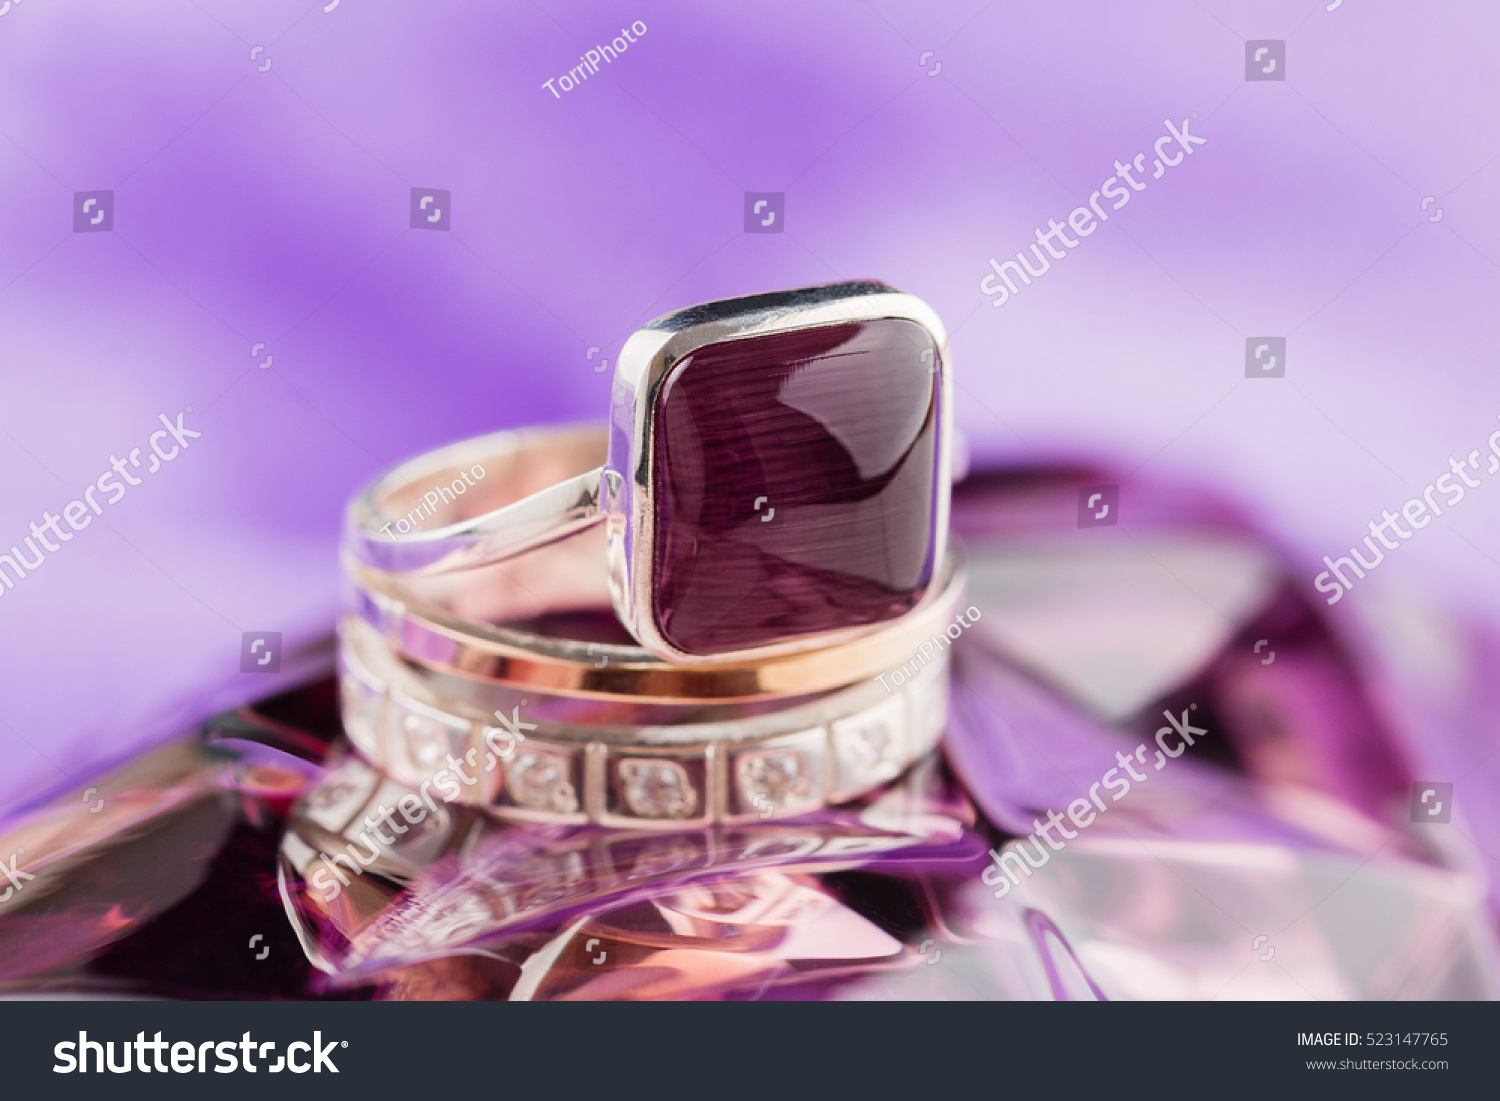 https://www.shutterstock.com/pic-523147765/stock-photo-gold-ring-square-shaped-with-purple-gemstones-on-violet-background.html